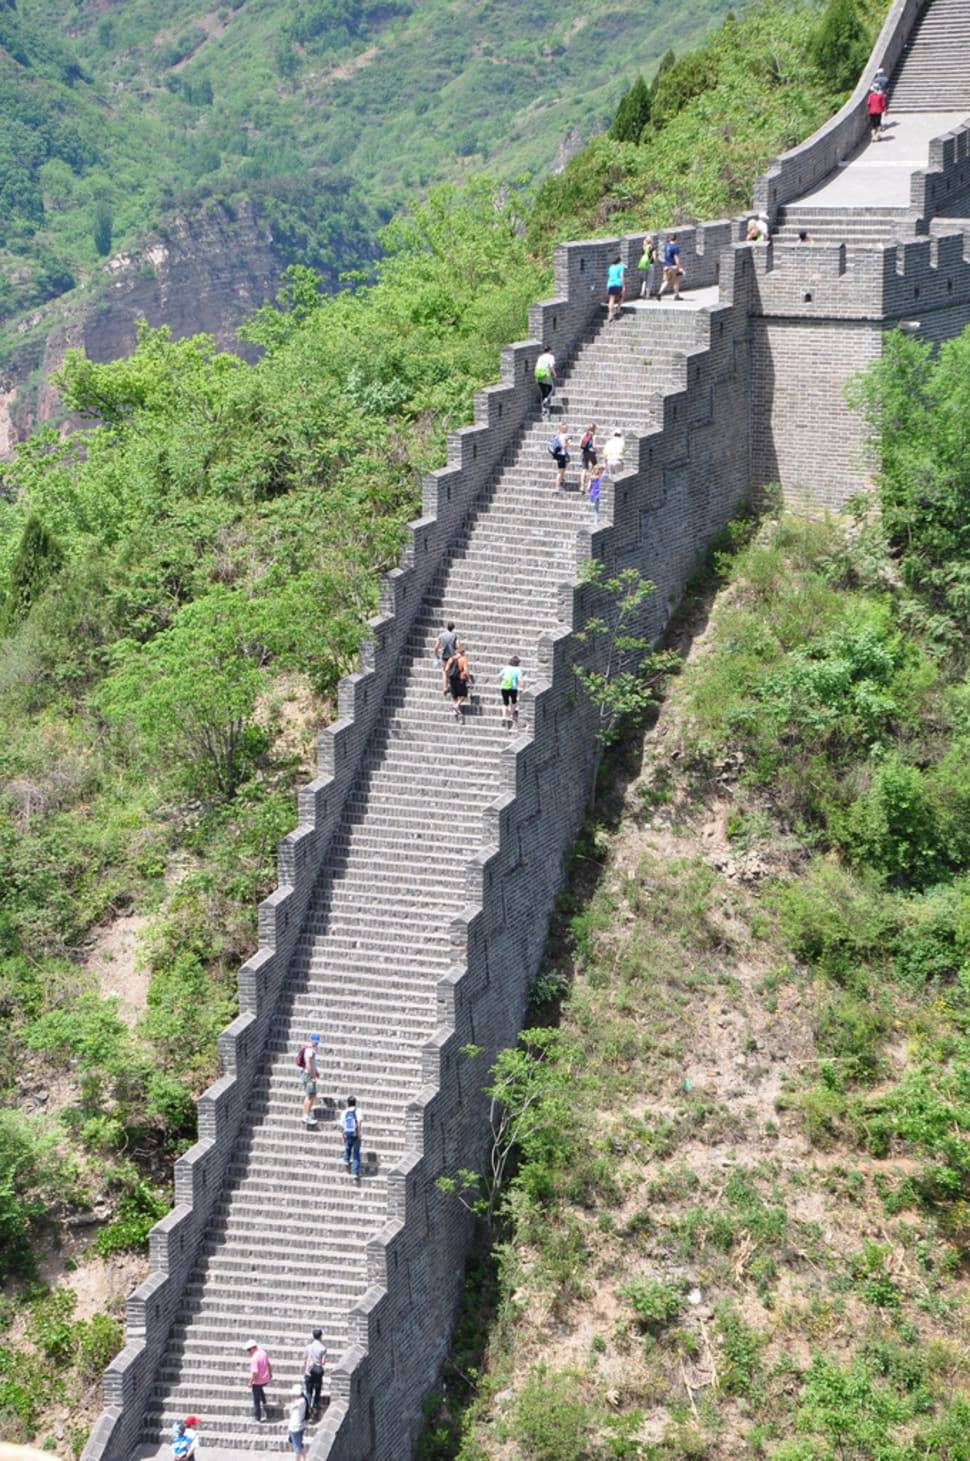 Best time to see Great Wall Marathon in China